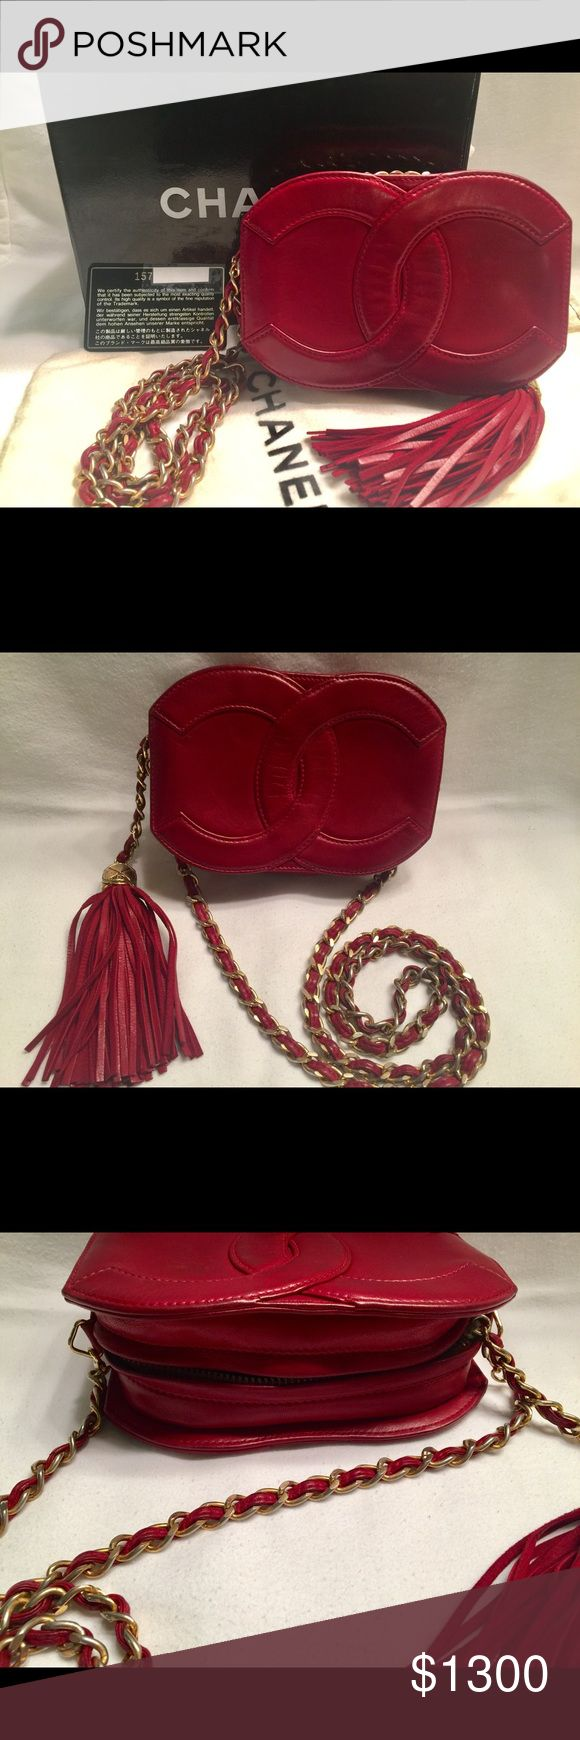 """100% Authentic Chanel purse bag fringe tassel Rare find. Gorgeous authentic vintage cc logo Chanel purse. 6.25"""" wide x 4.25"""" hight x 2"""" with purse, dust bag, box and authentic card. Red/maroon authentic sticker intact. Purse in great vintage condition. Inside black with whole sticker visible. Chain has some wear. See pics for condition. No trades. Price firm. CHANEL Bags"""